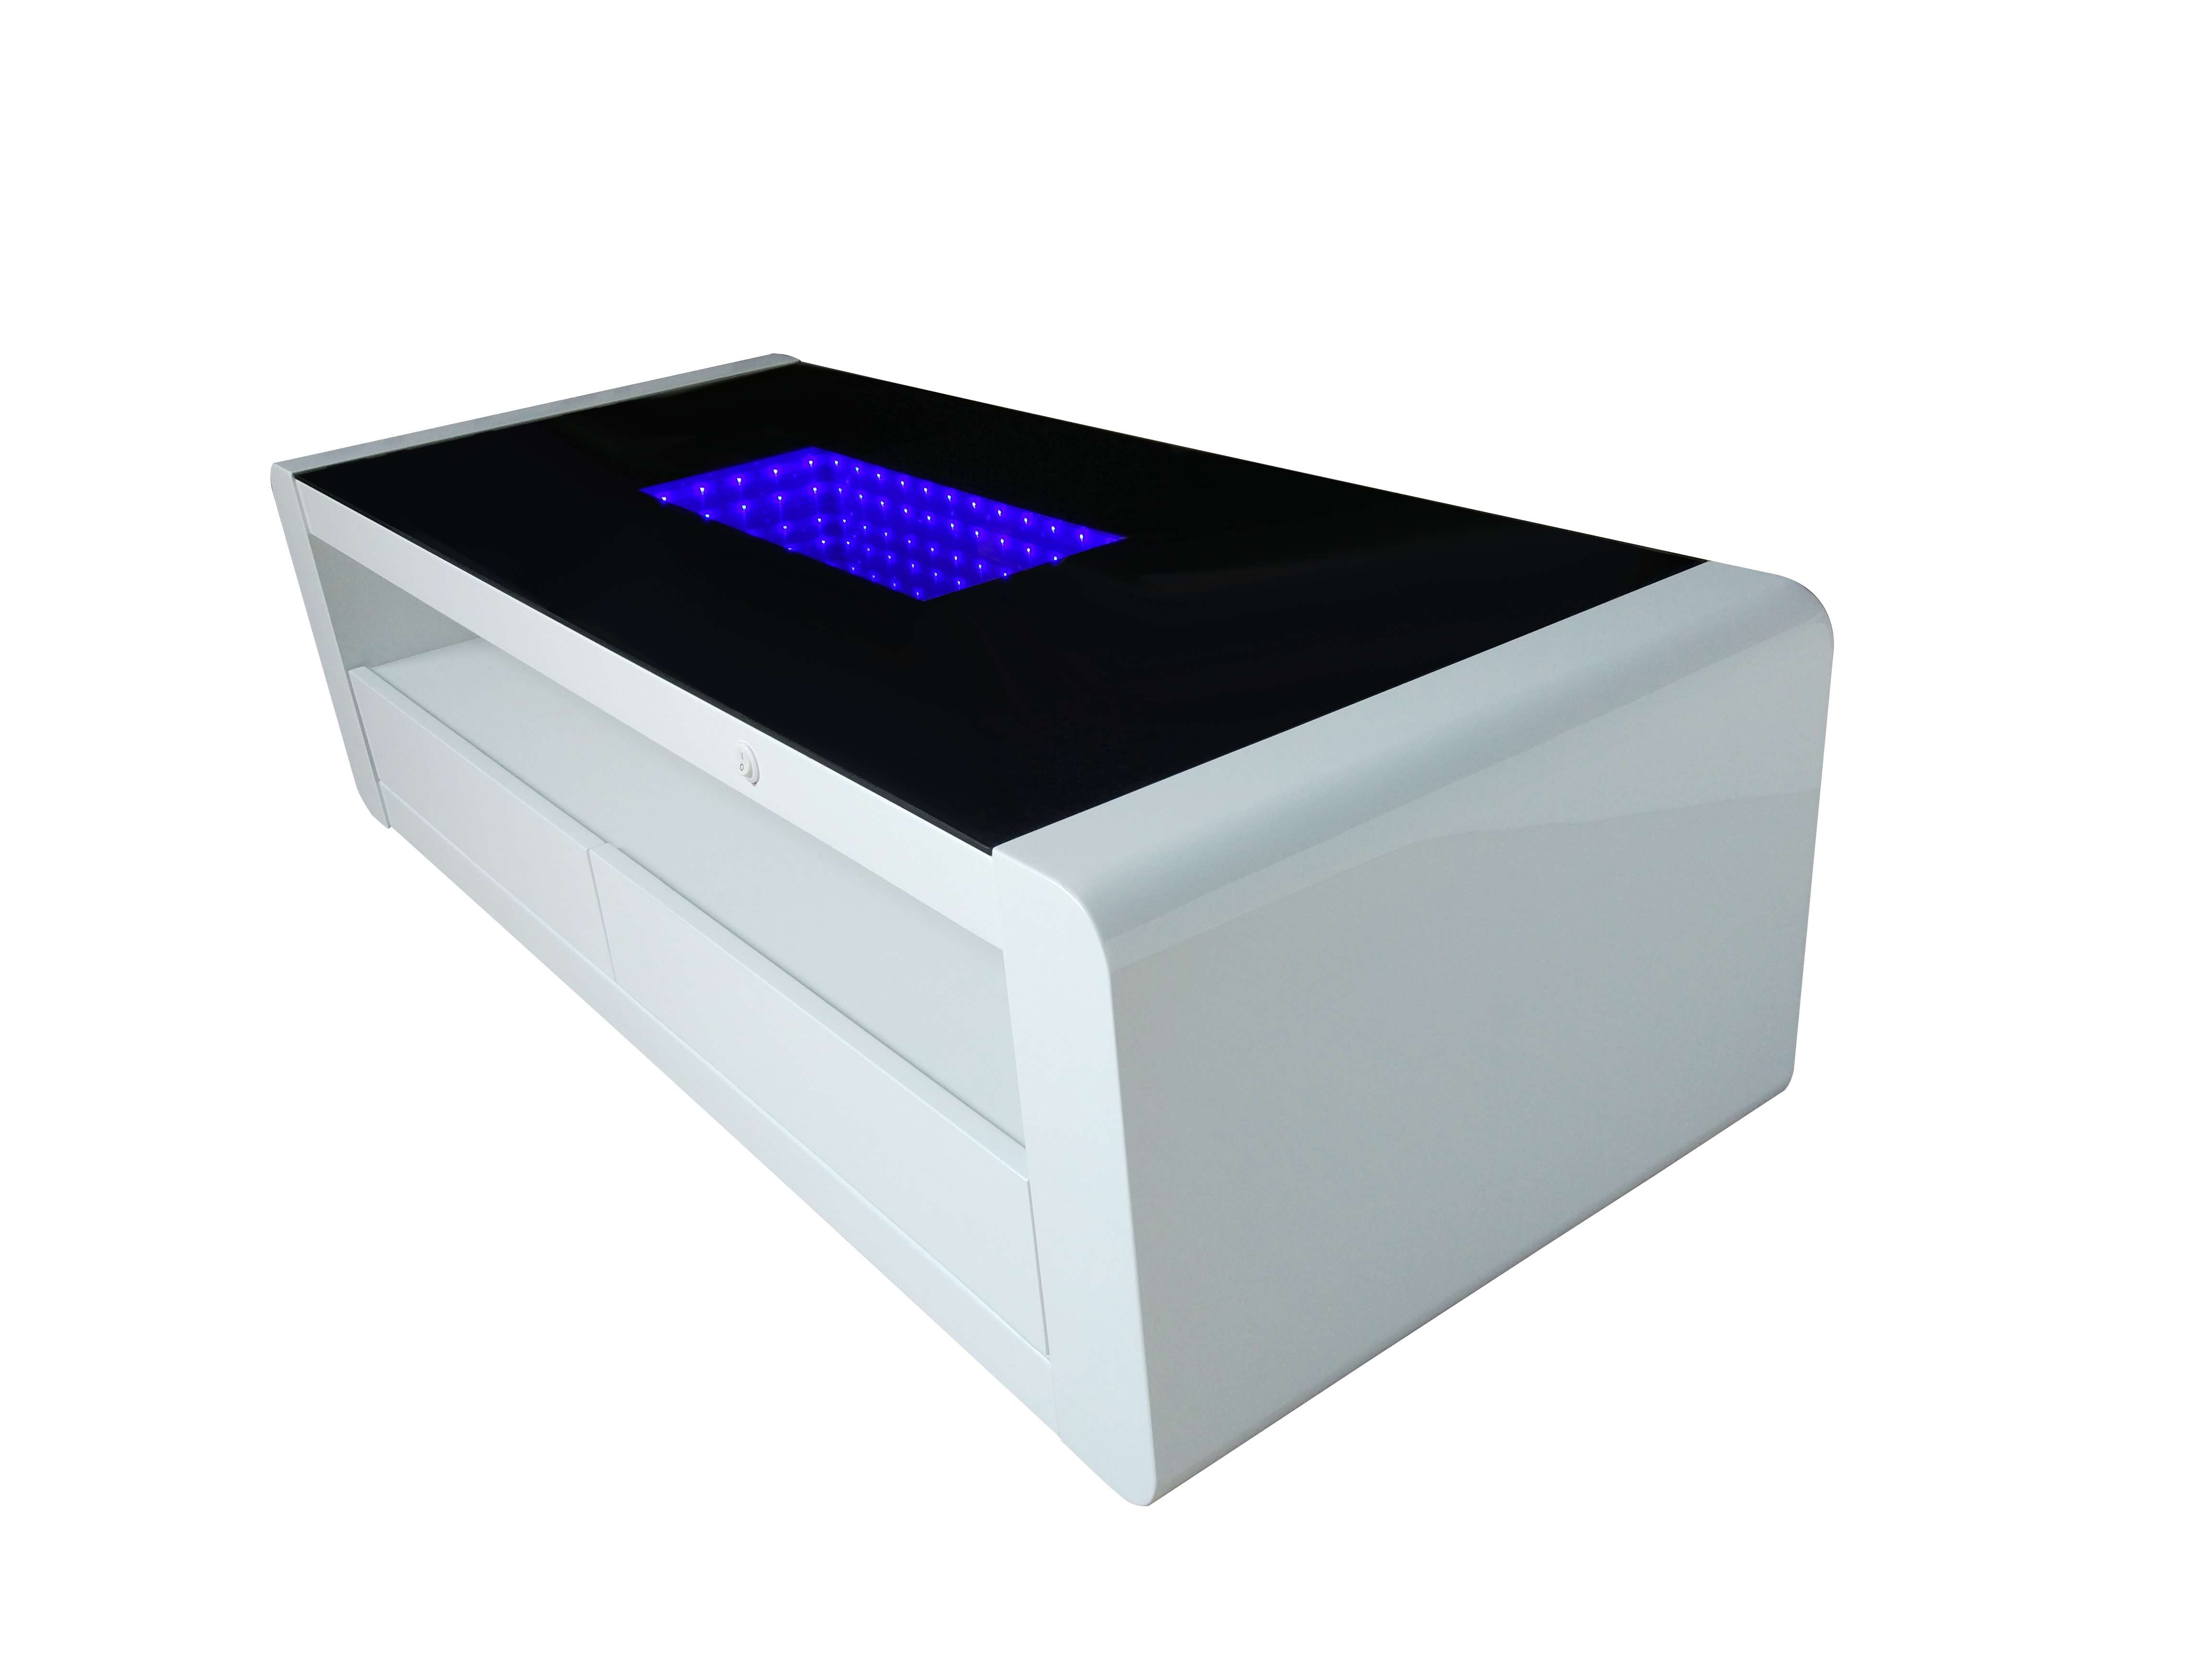 Best And Newest High Gloss Coffee Tables Pertaining To Matrix High Gloss Coffee Table – White & Black Gloss With Blue Led (View 2 of 20)